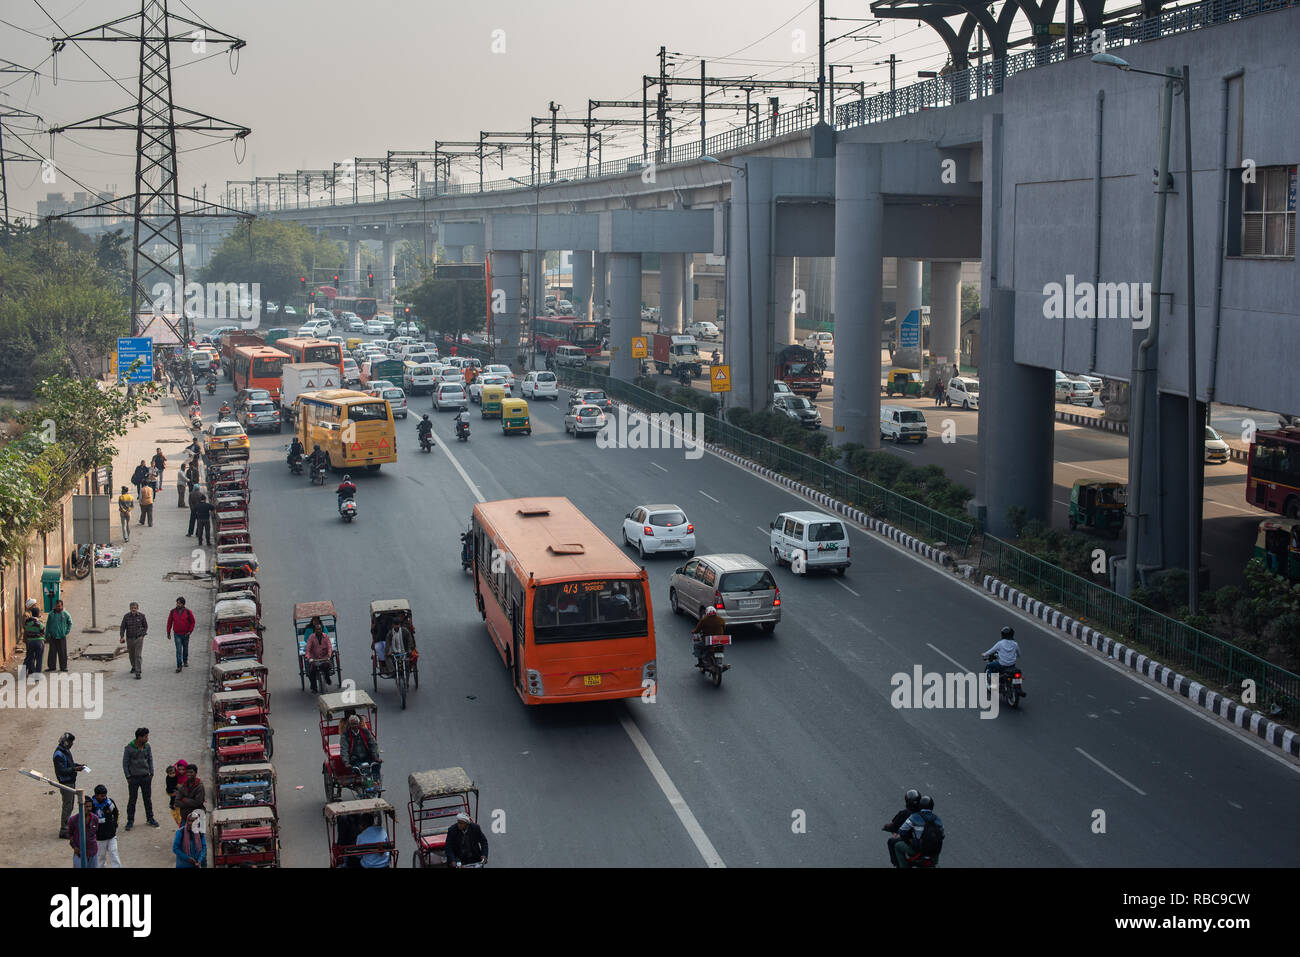 View of the travel interchange outside Sarita Vihar Metro station in New Delhi with rickshaws waiting for customers, buses and traffic moving. Stock Photo